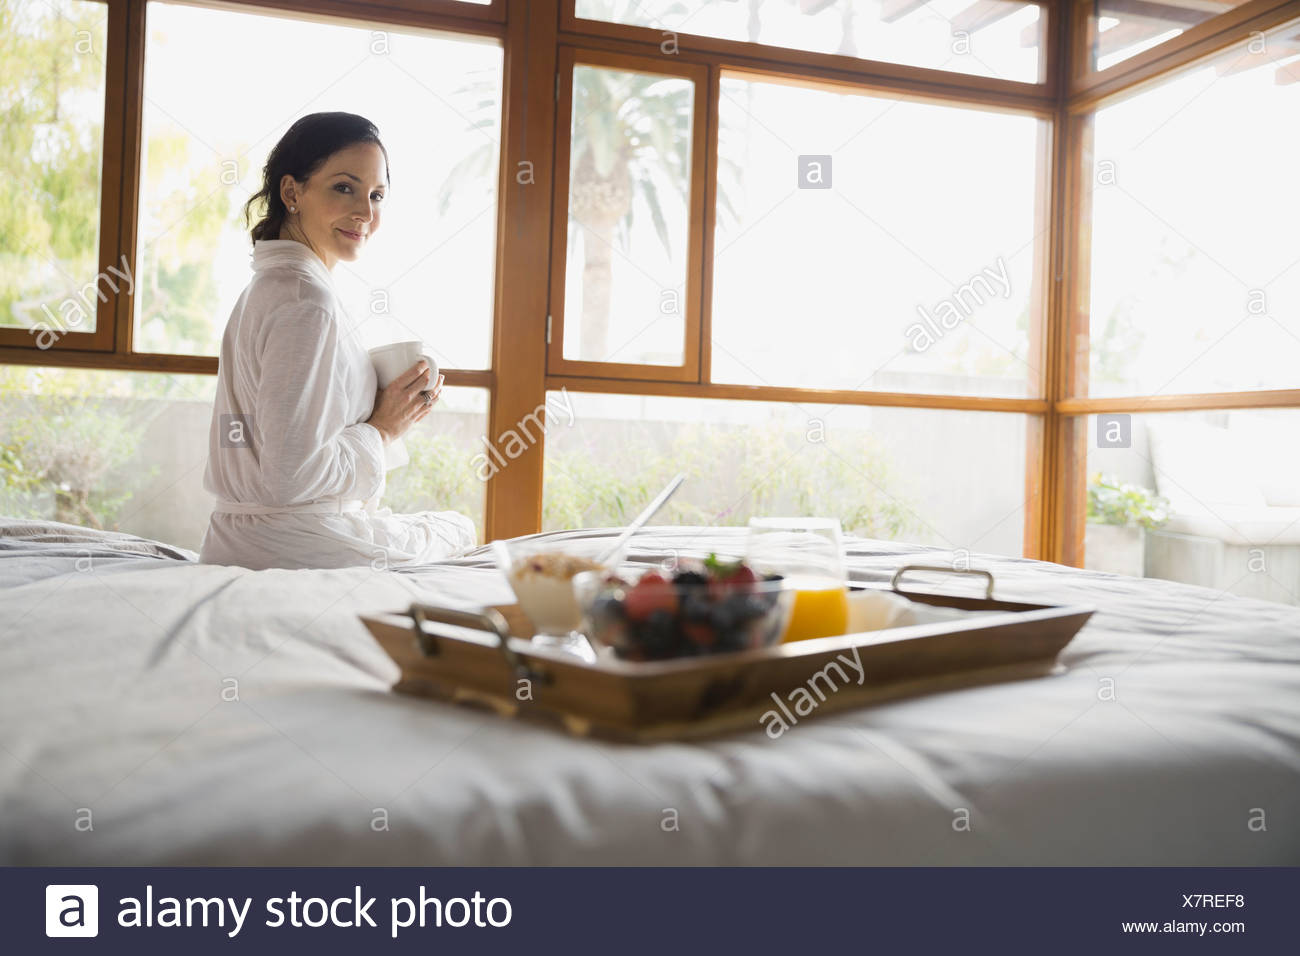 Woman sitting on bed holding coffee cup - Stock Image